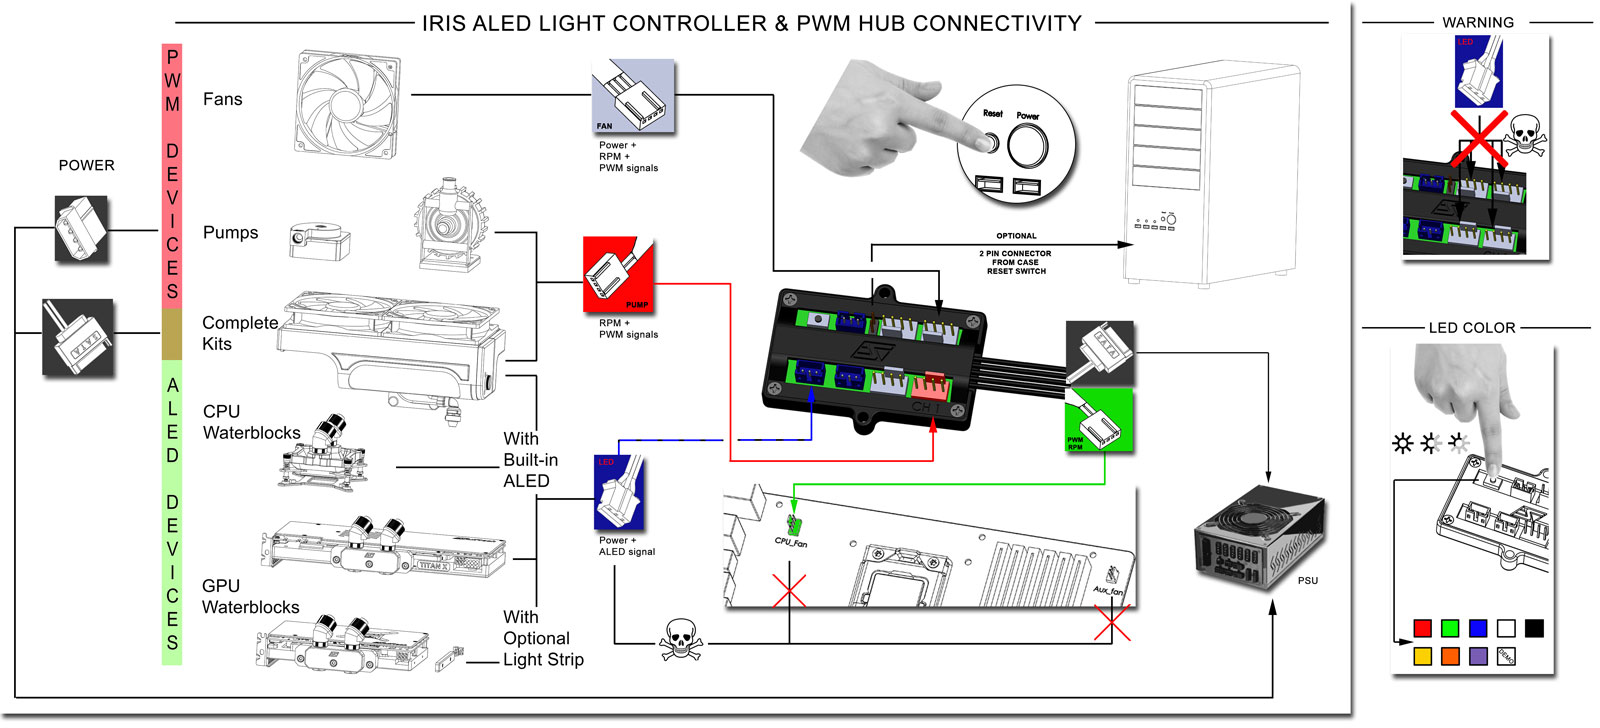 Iris Controller Series Rouchon Industries Inc Dba Swiftech Pc Connect 3 3pin Fans To 1 Fan Channel Important Note The Skulls Depicted In Above Schematics Symbolize Fact That Users Should Never Attempt Pin Female Aled Connectors